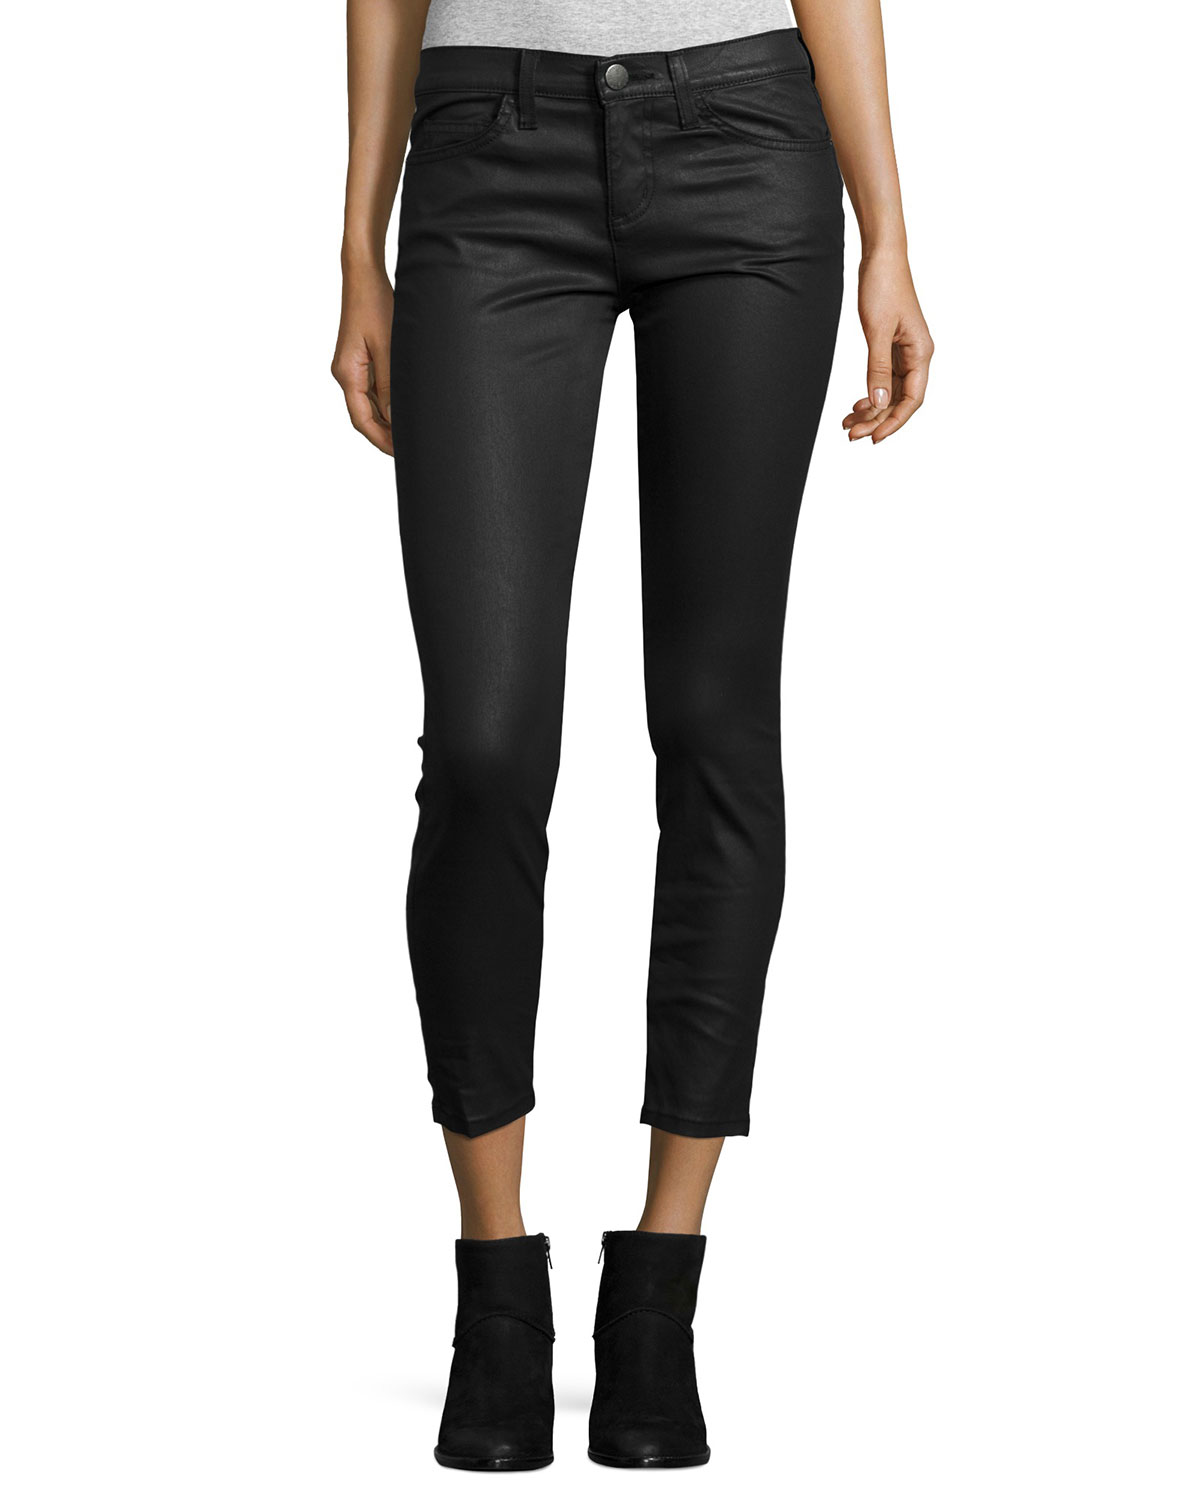 Current/Elliott The Stiletto Coated Jeans, Black, Size: 25